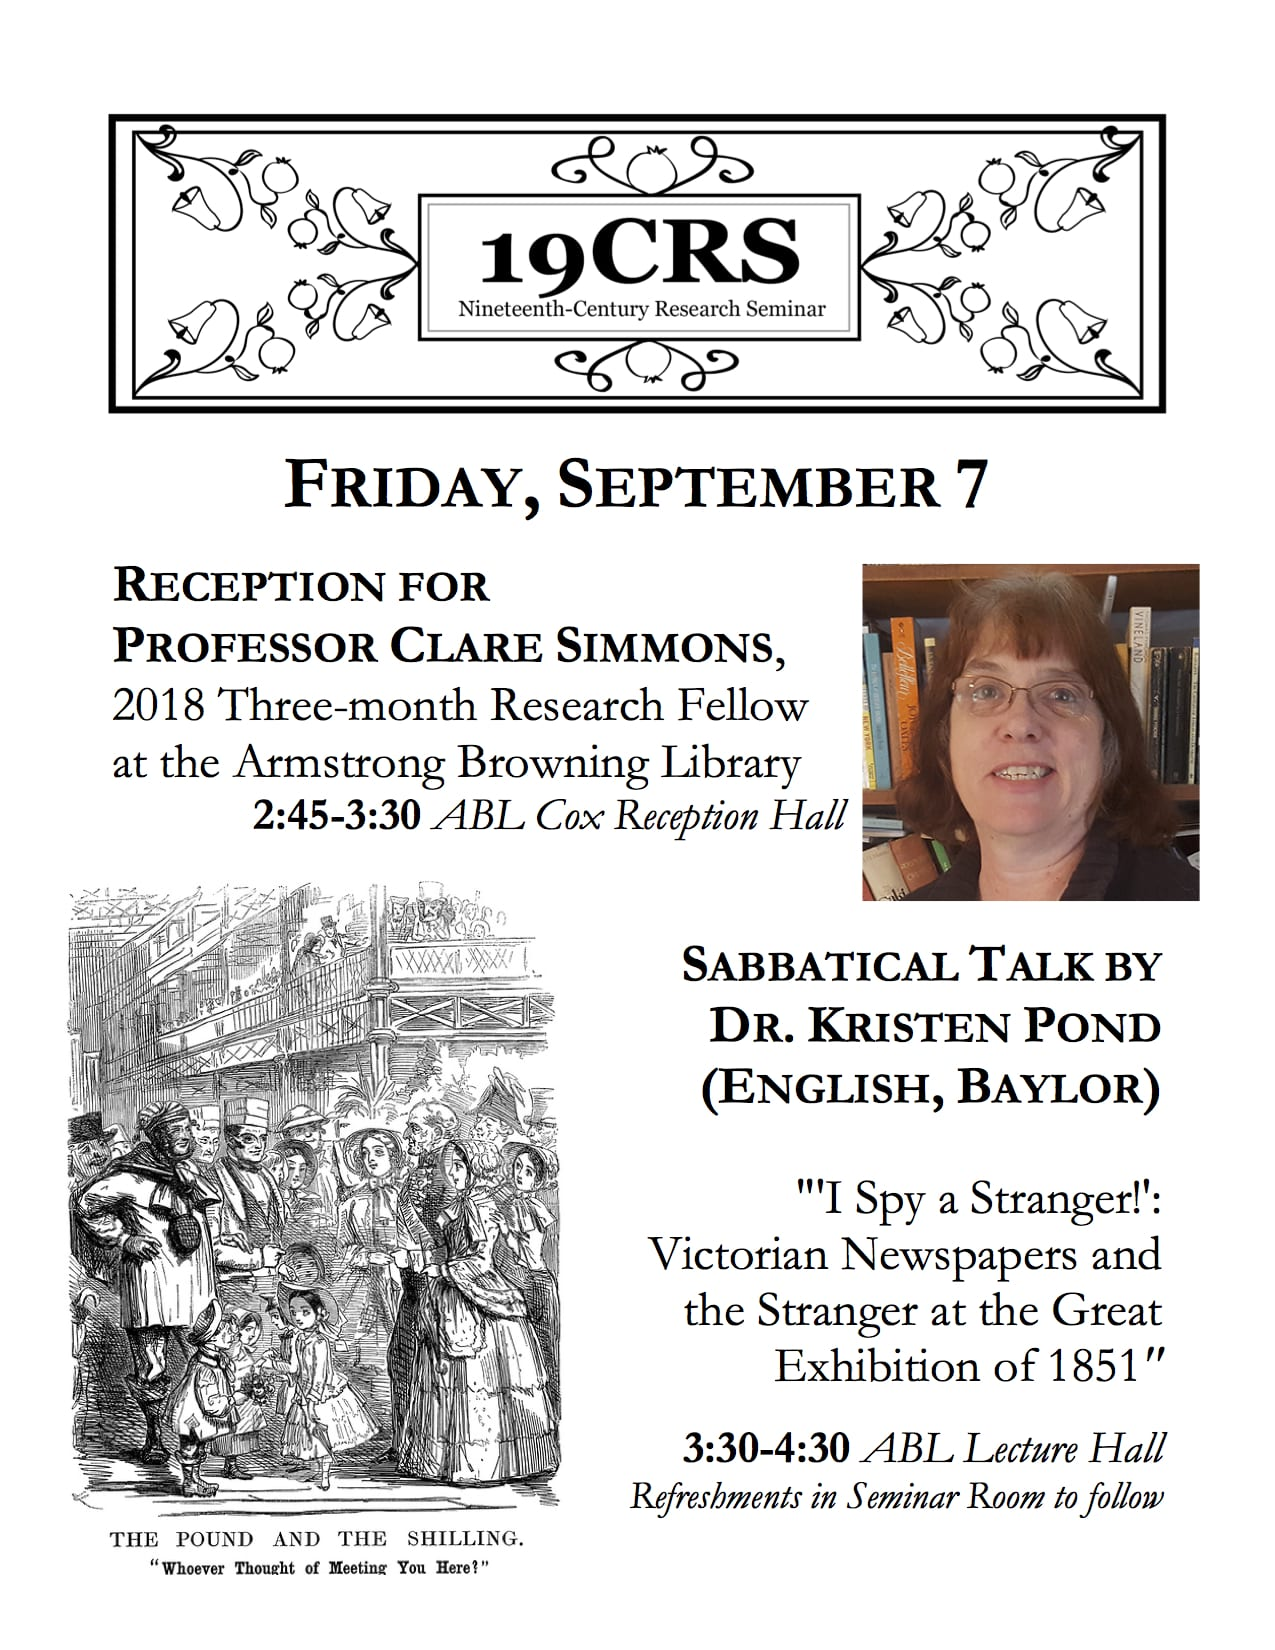 Flier for Professor Clare Simmons's Reception and Dr. Kristen Pond's Sabbatical Talk